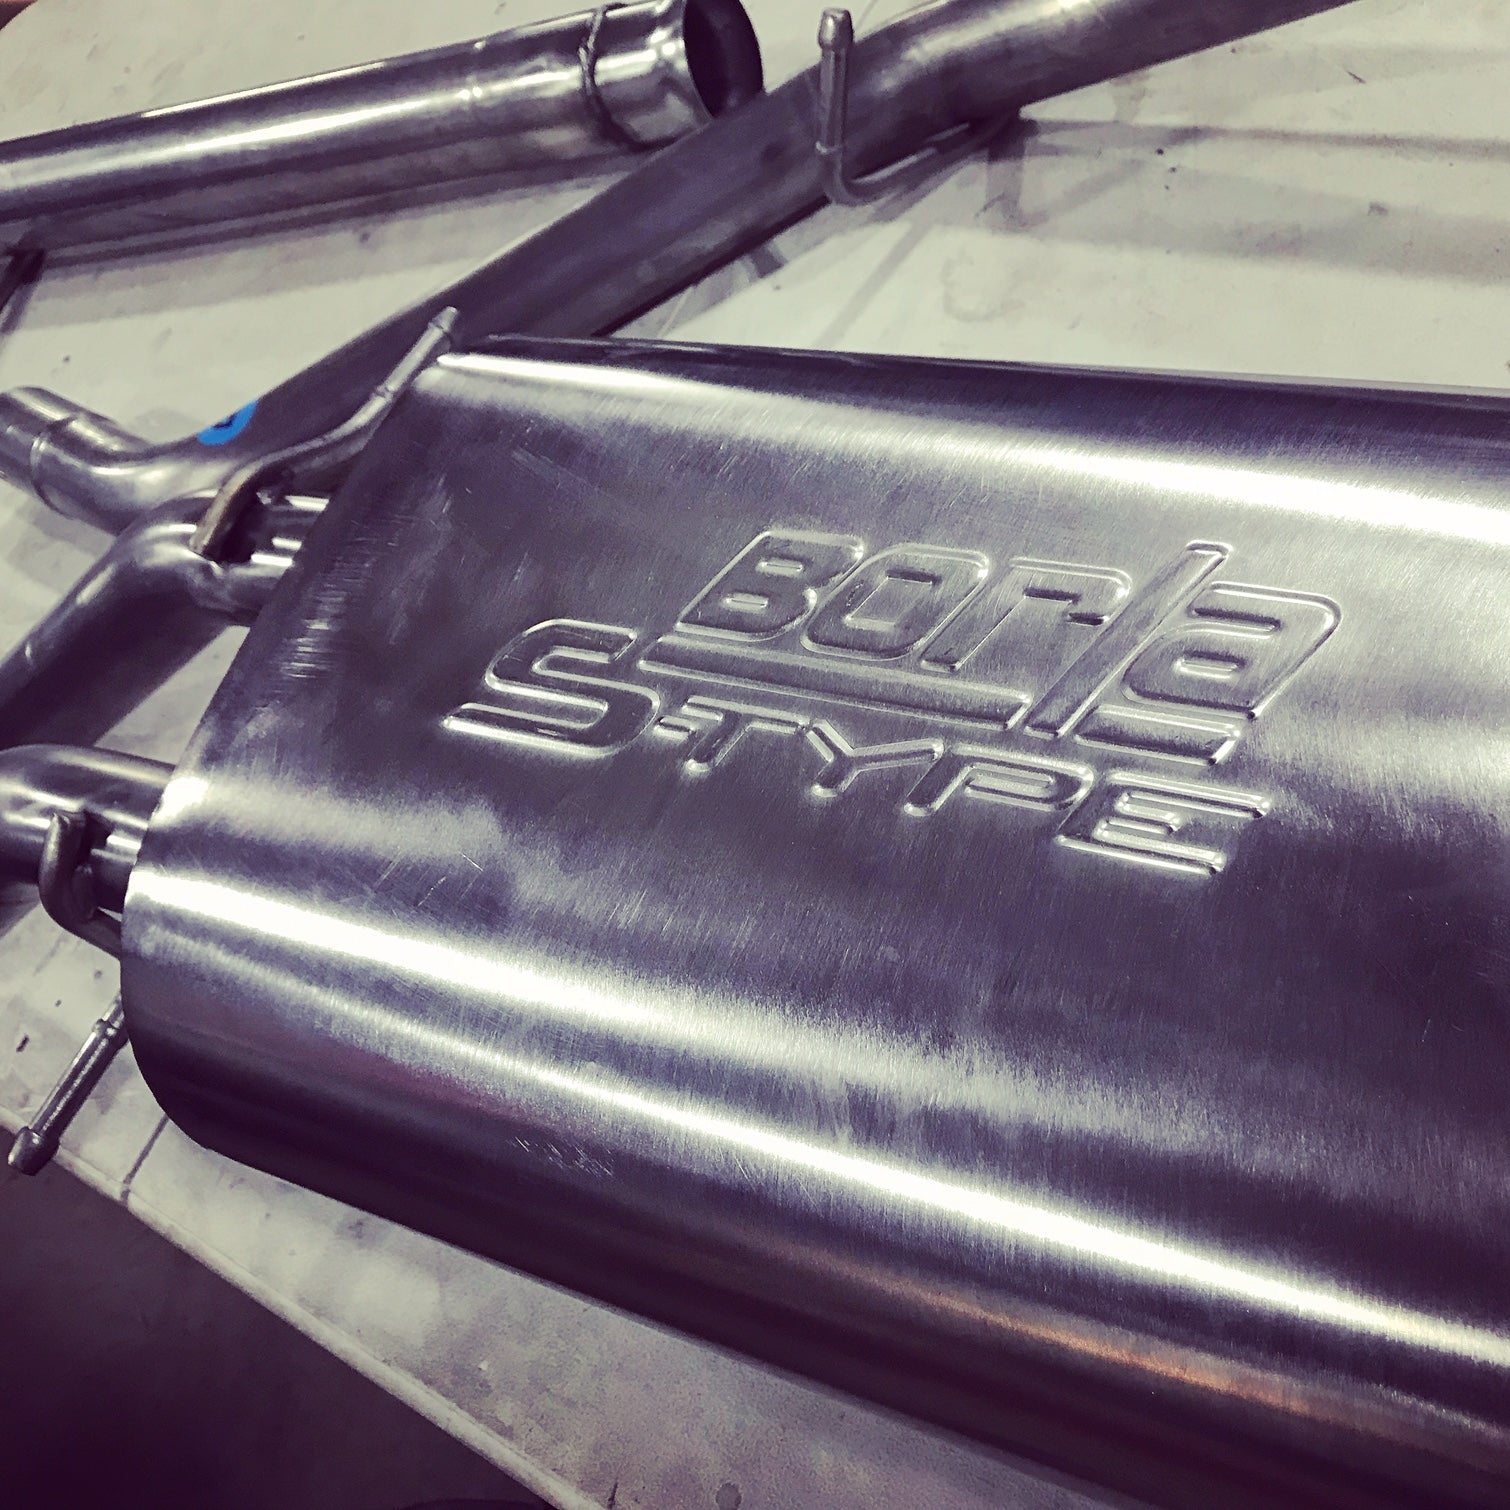 truck exhaust systems - Borla S-Type Performance Aftermarket Exhaust Installation CPW Truck Stuff